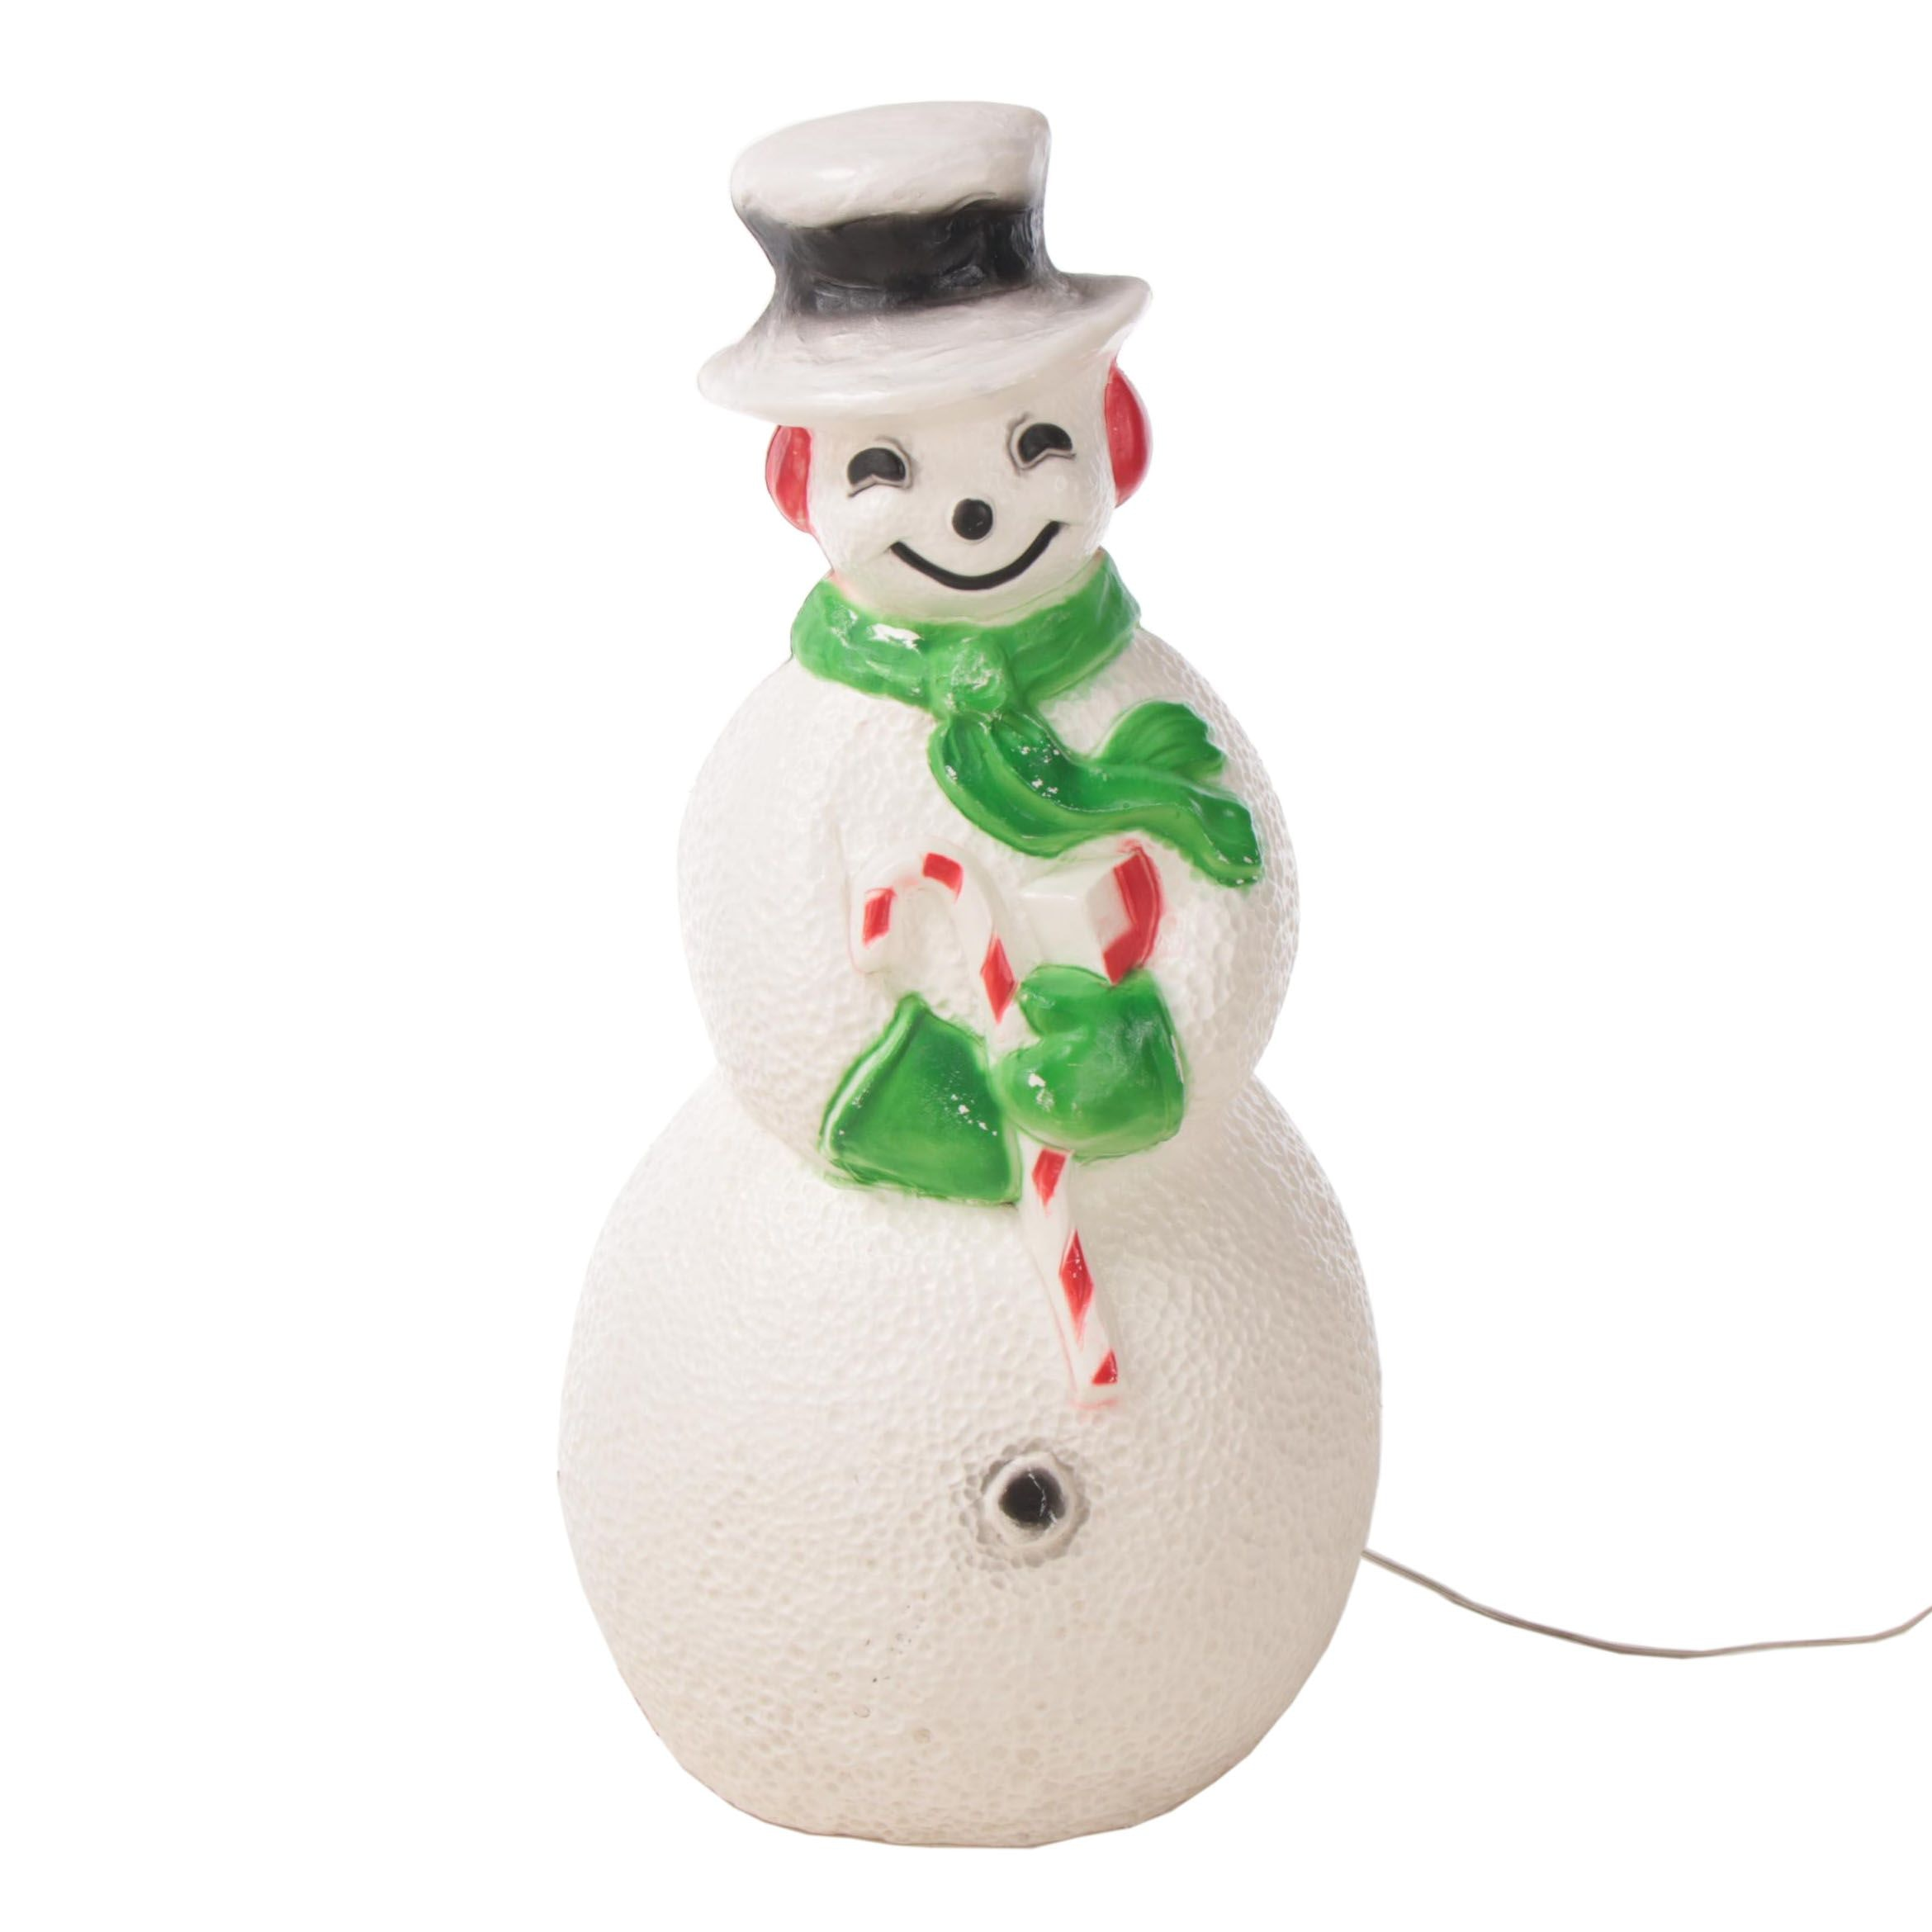 Blow-Mold Plastic Illuminated Snowman Lawn Decoration, Late 20th Century